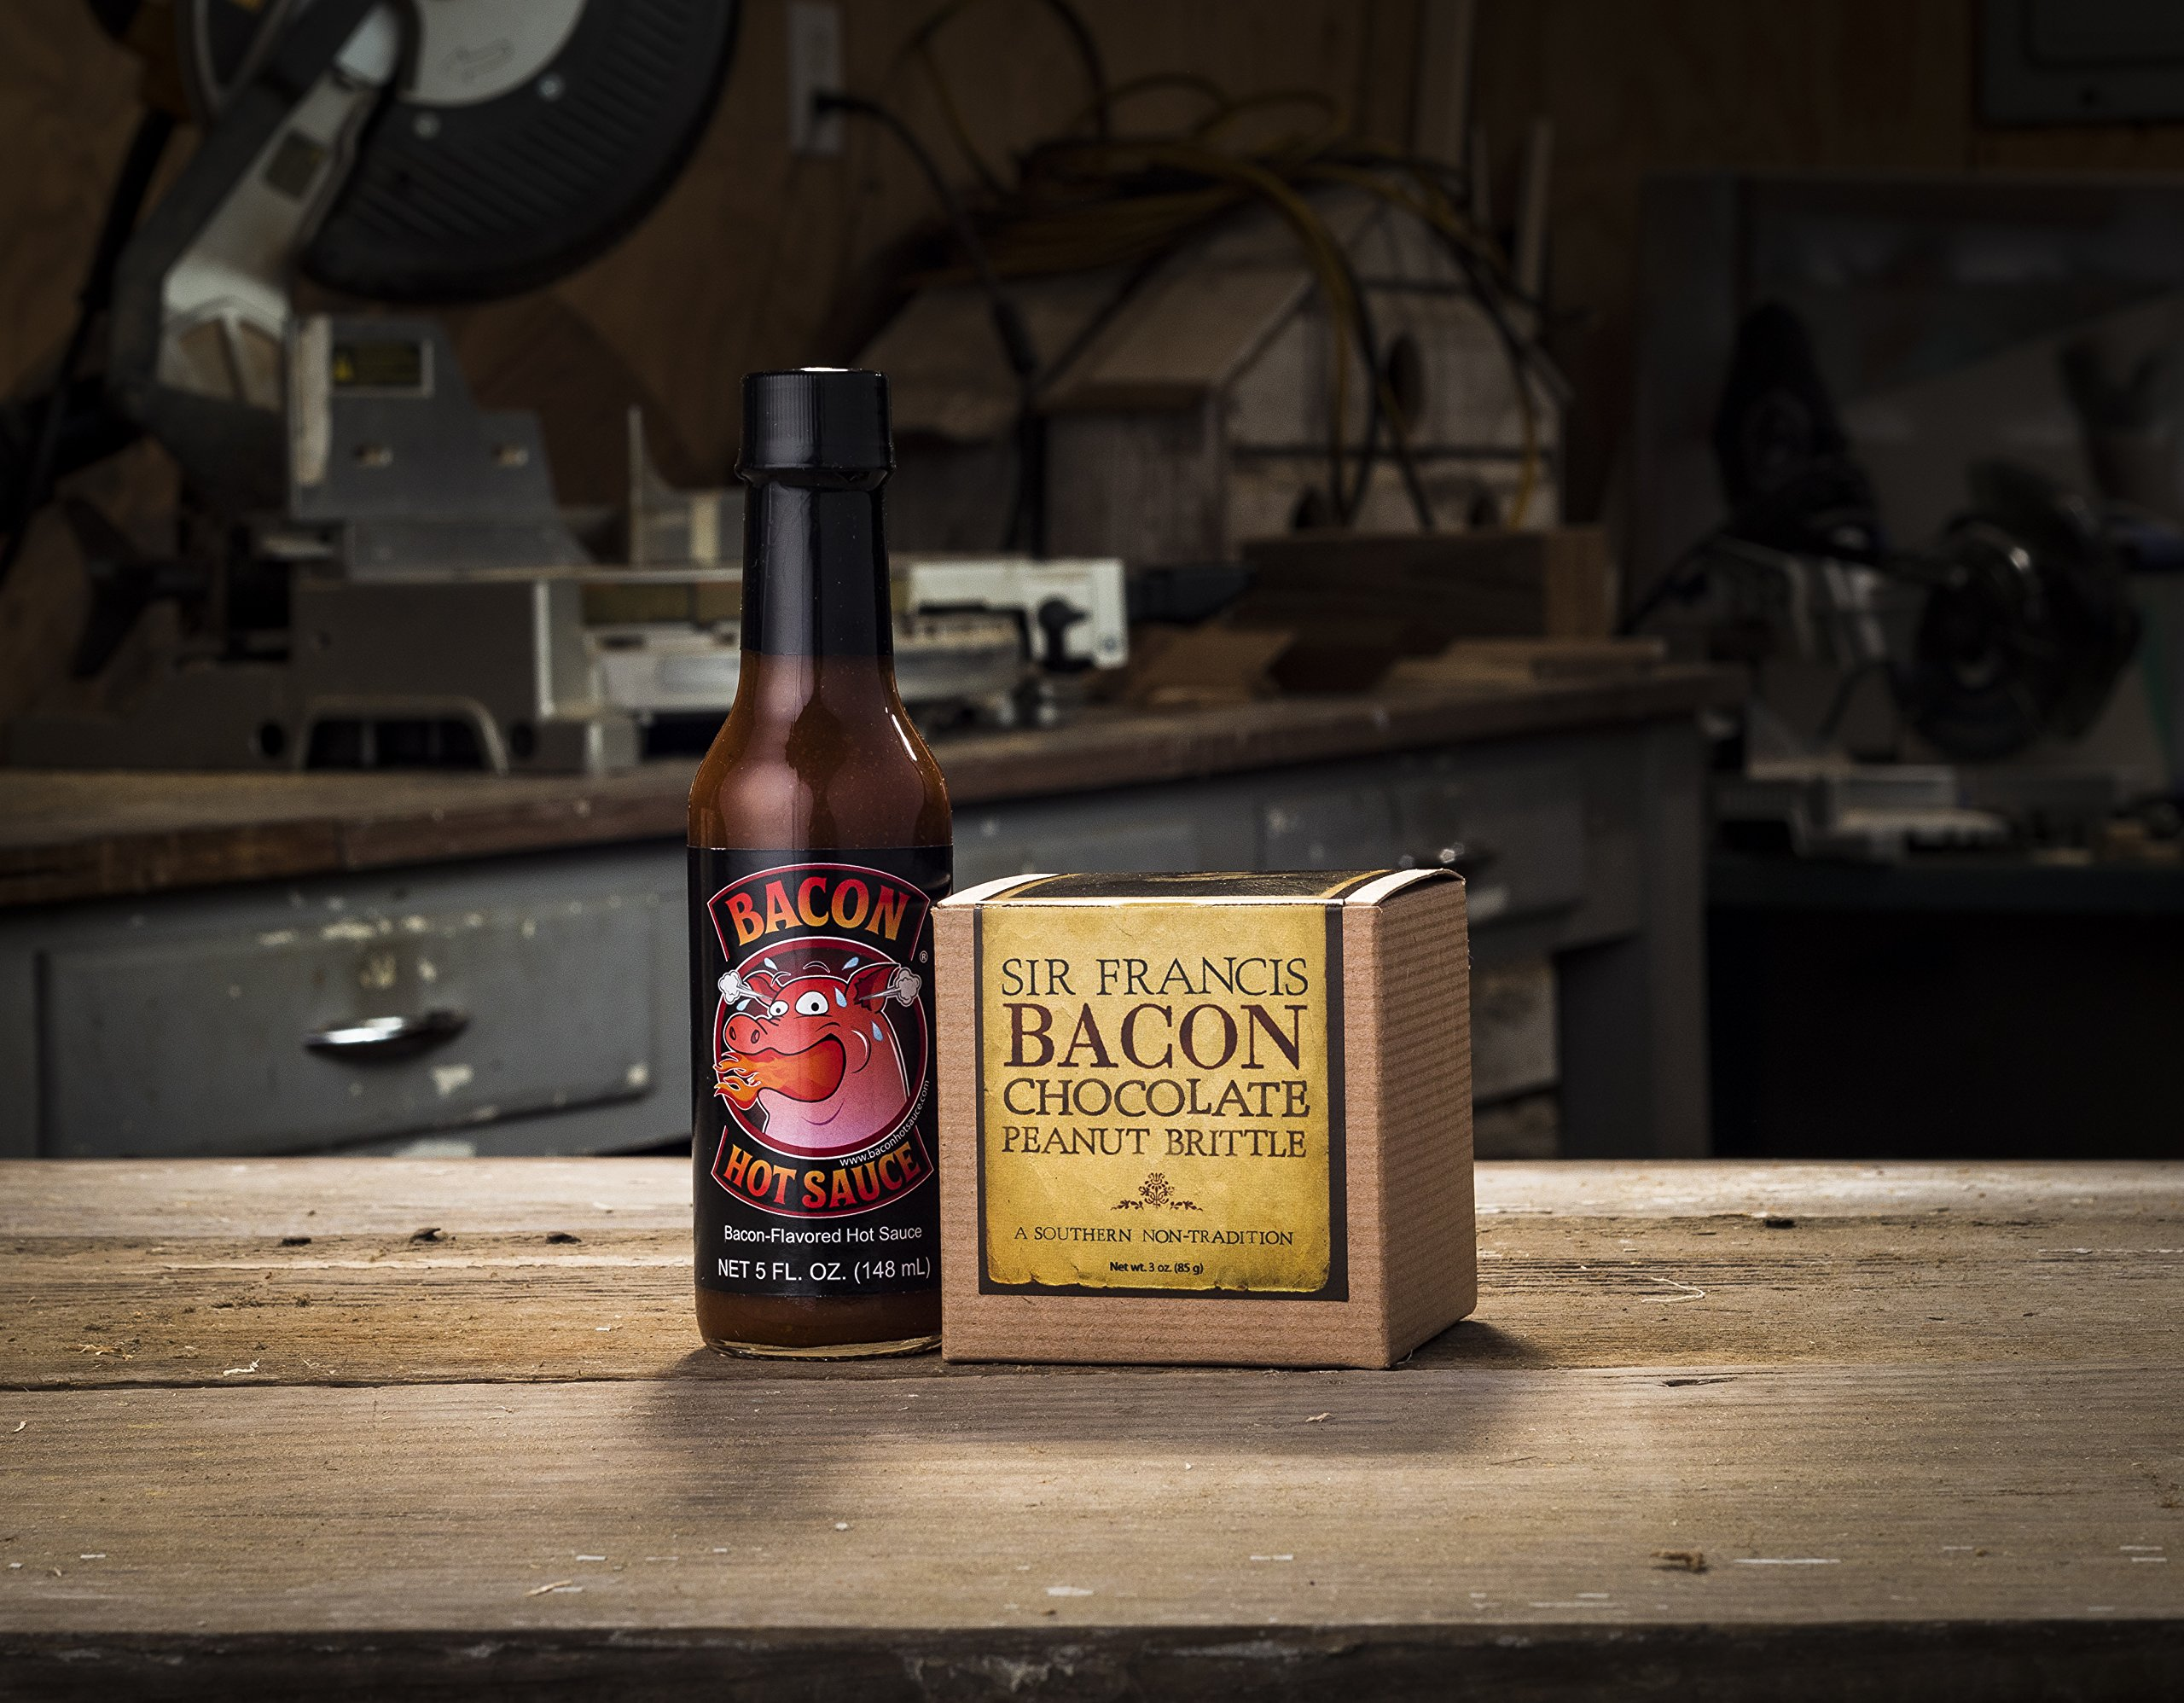 Bacon Gift Pack (Bacon Lover Sampler Set) - Bacon Six Ways - Gourmet Food Gift - Great Gift For Men - Comes in a Wooden Gift Crate by Broquet (Image #4)